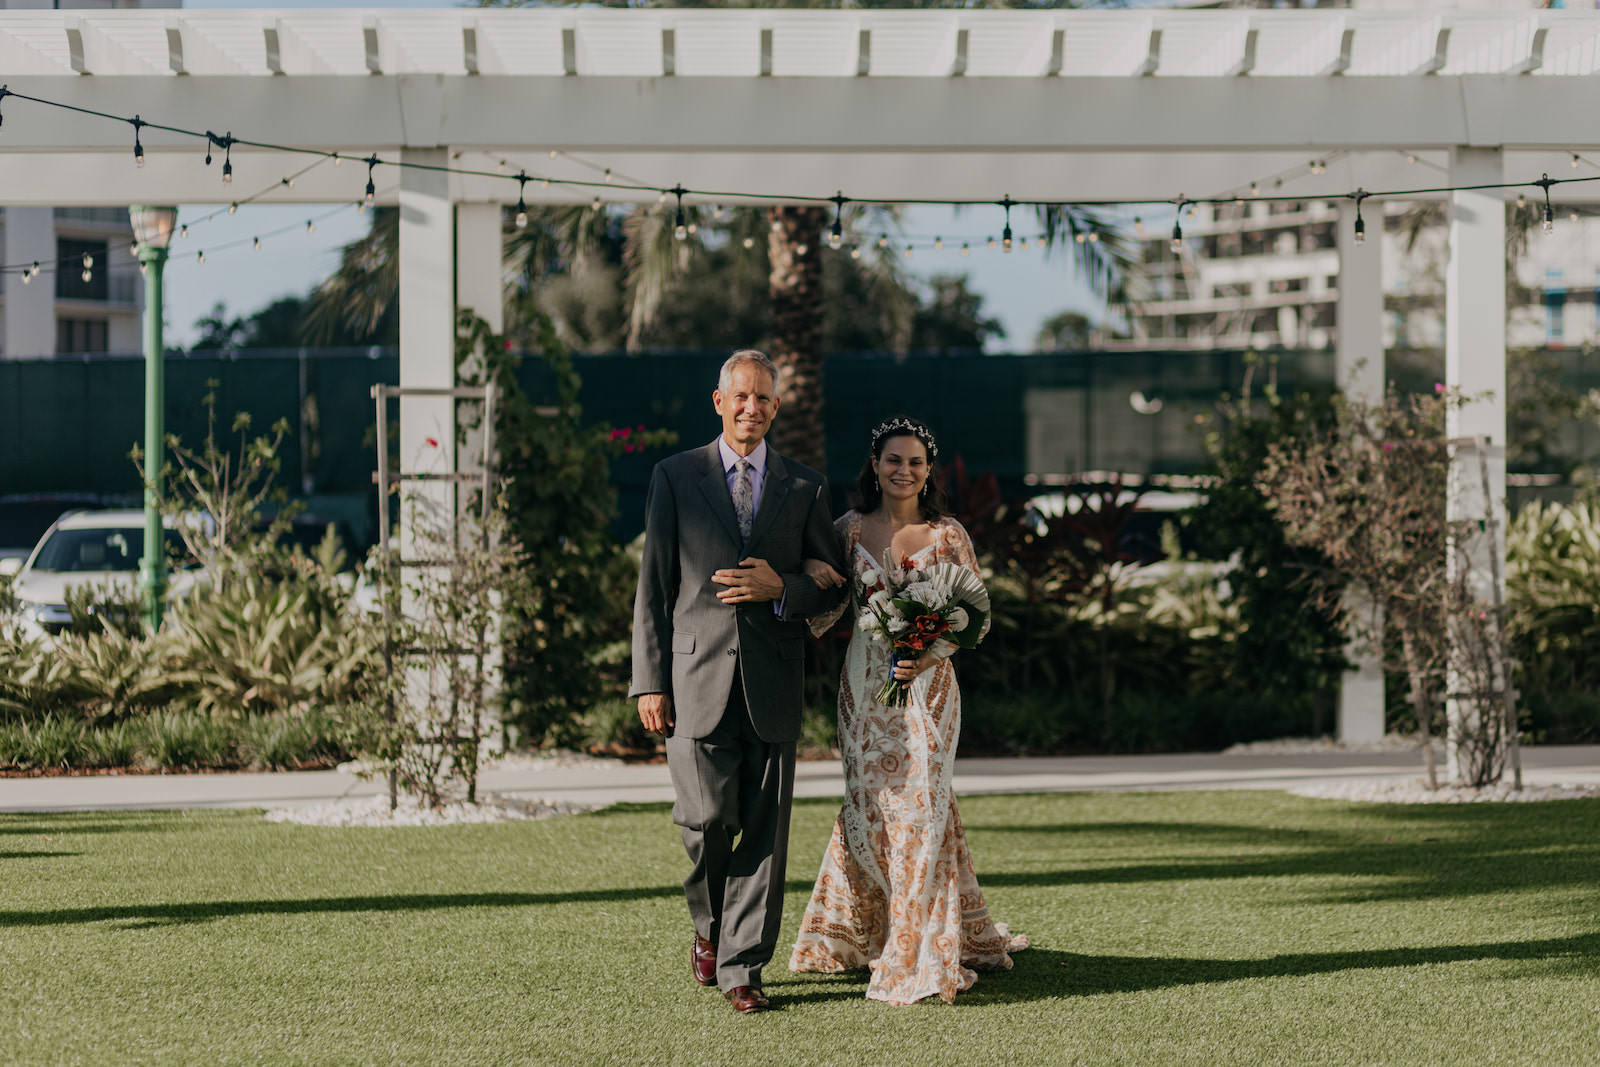 Bride Walking Down Aisle with Father during Outdoor Clearwater Wedding Ceremony   Boho Gold Bronze Embroidered Overlay Wedding Dress Bridal Gown with Illusion Sleeves and Train   Tropical Boho Bridal Bouquet